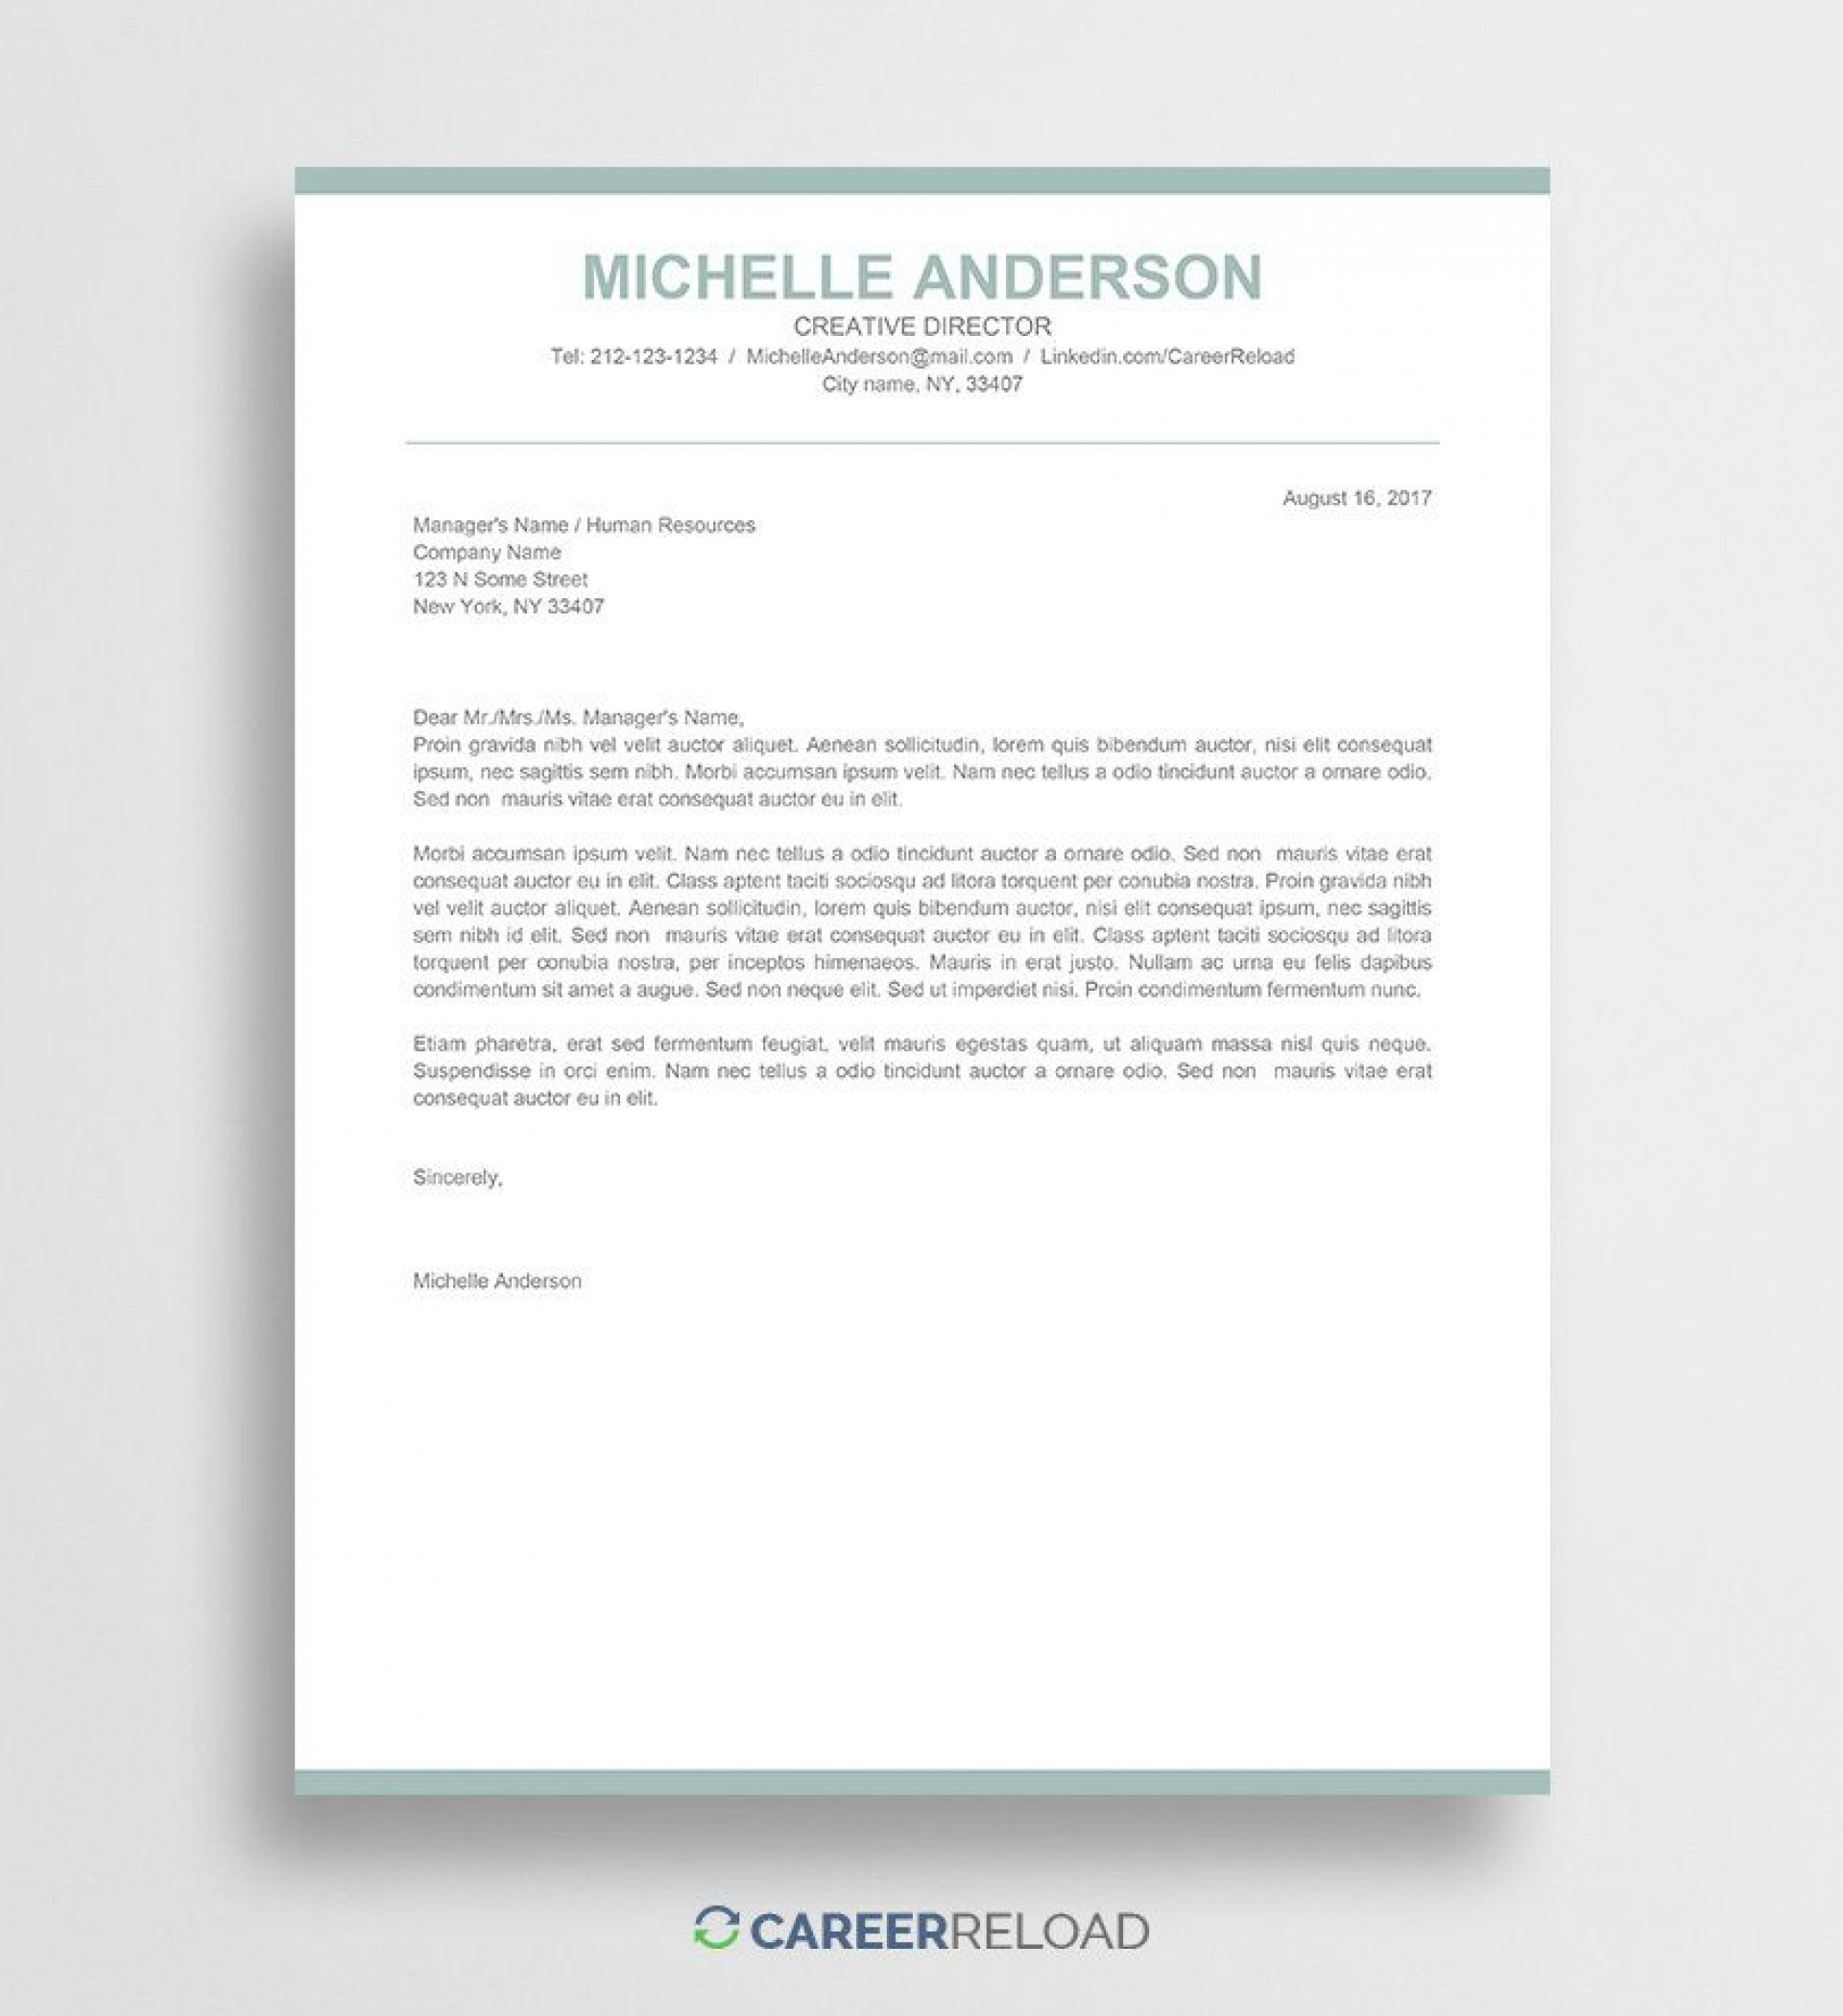 009 Stirring Download Cover Letter Template In Microsoft Word Highest Clarity  Free Creative Resume1920